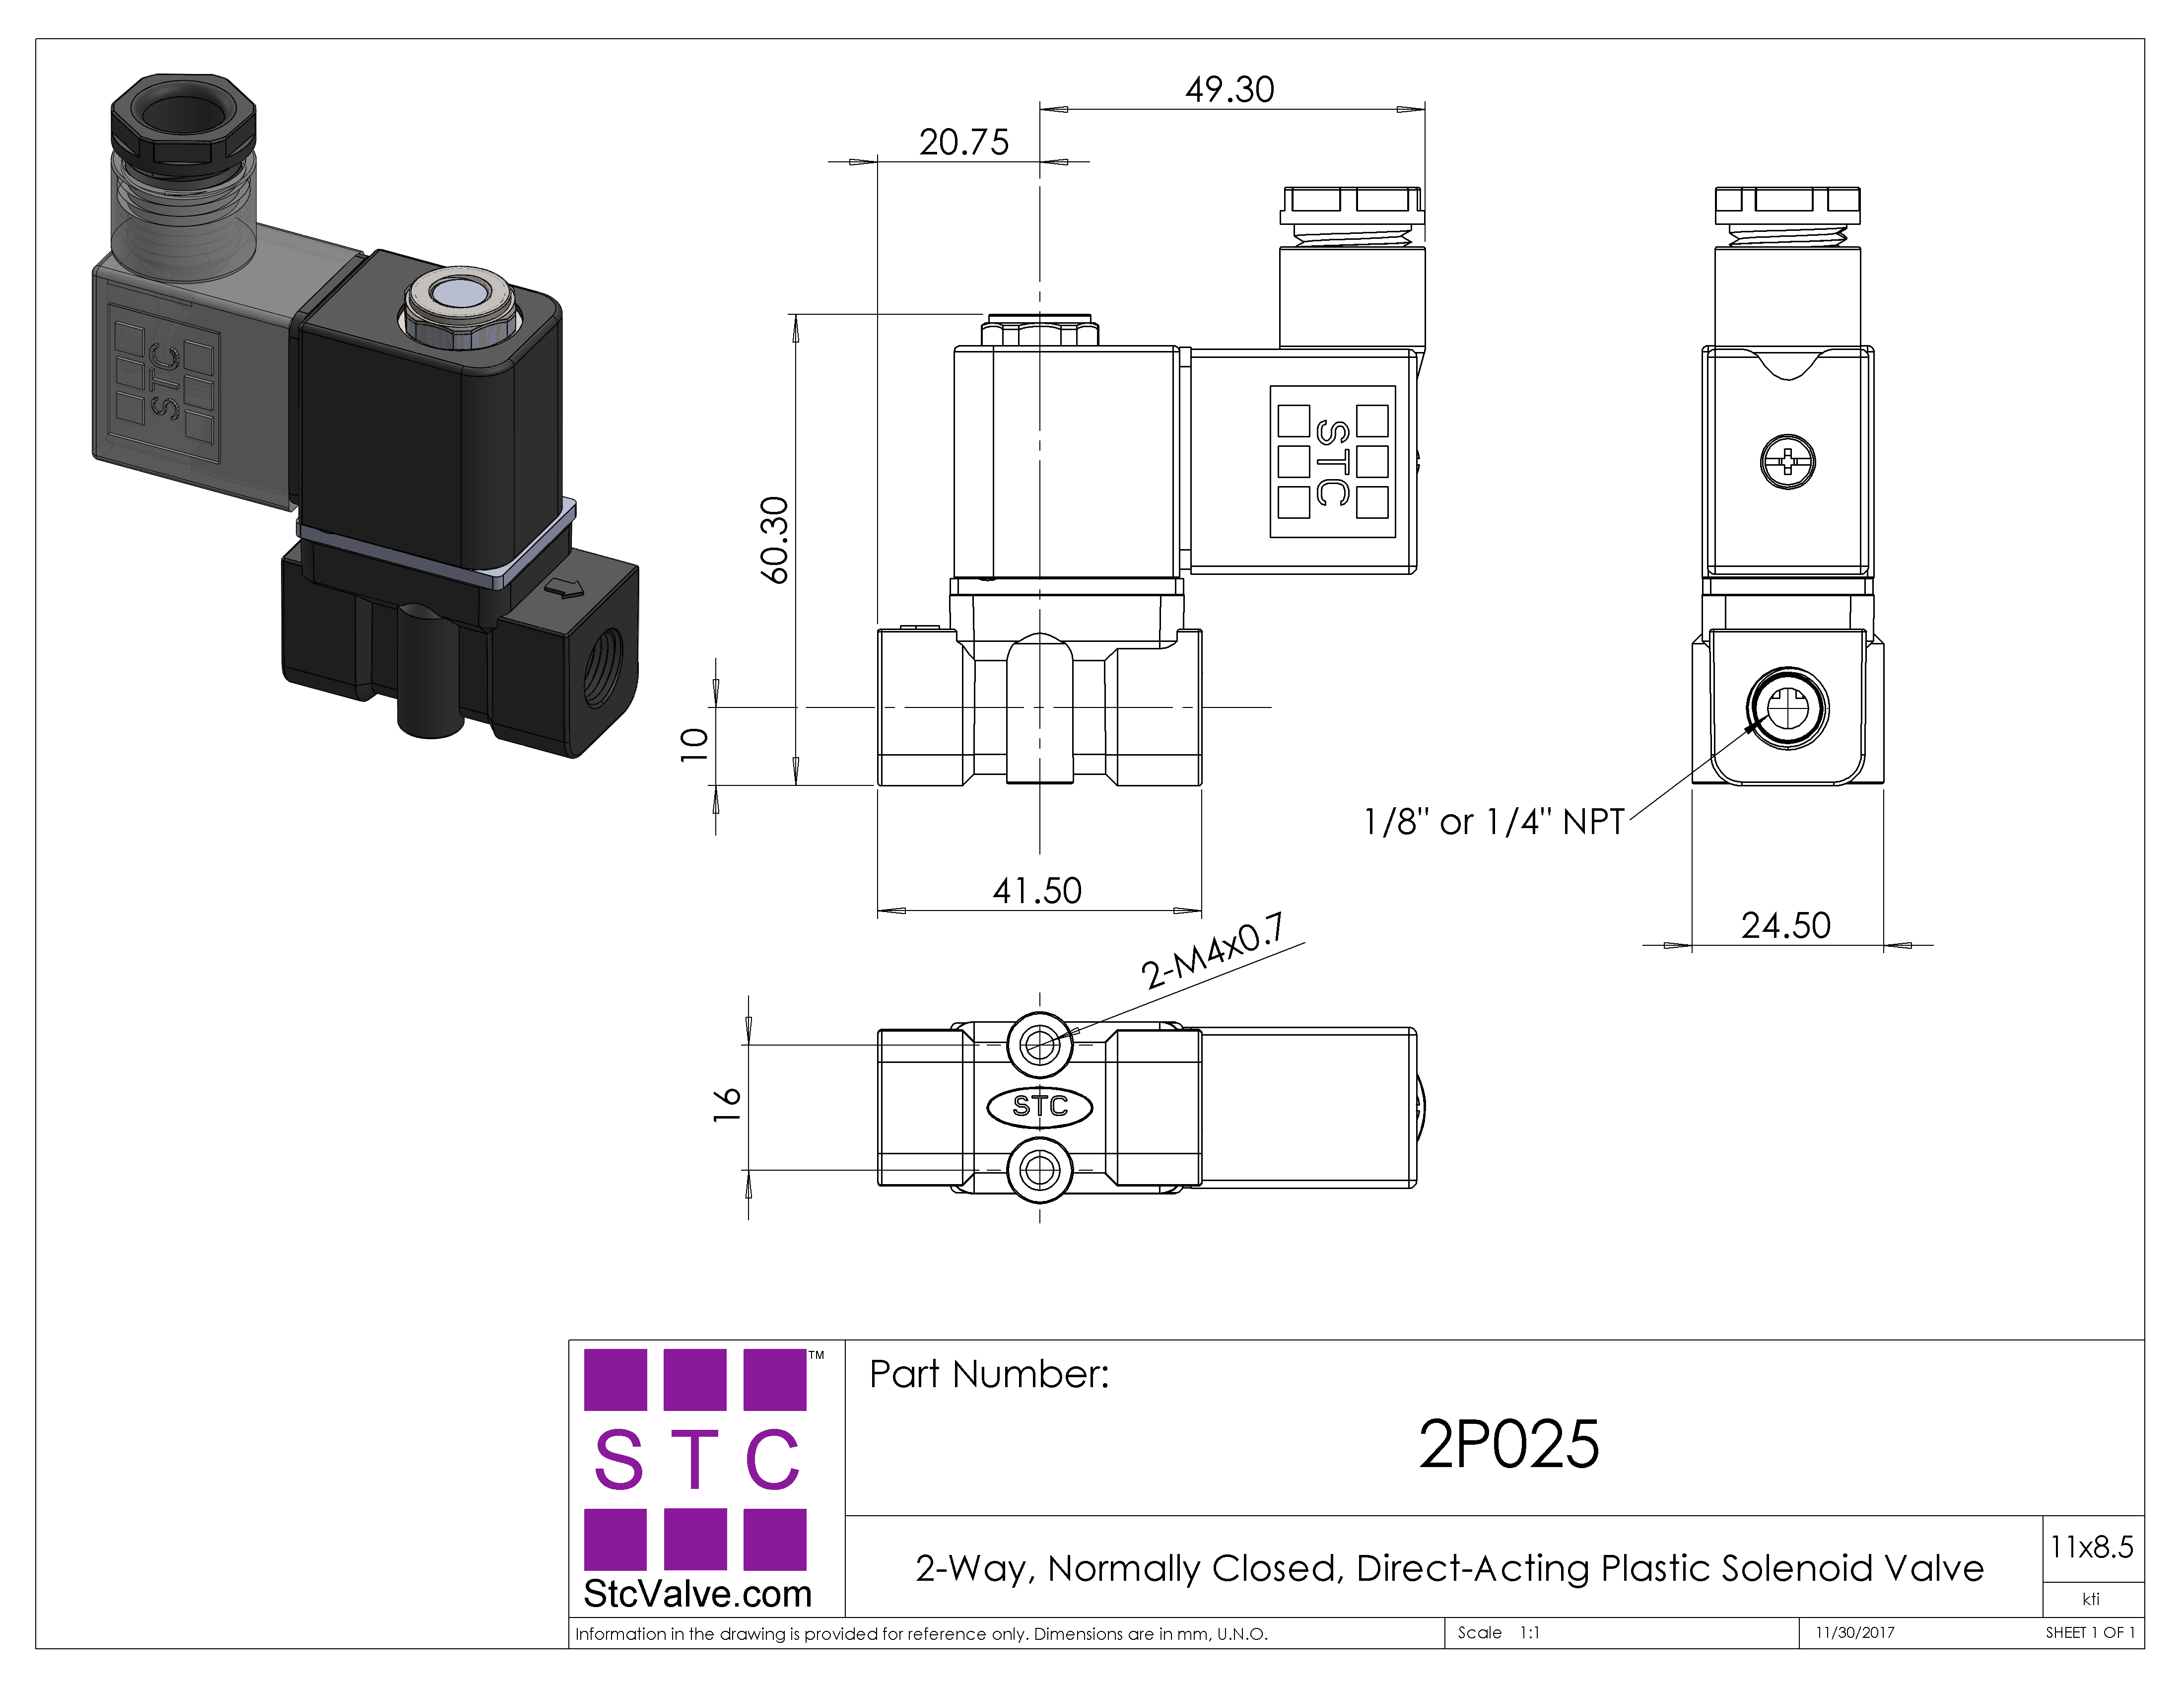 2P025: 2-Way, 2-Position Direct Acting Plastic Solenoid Valve